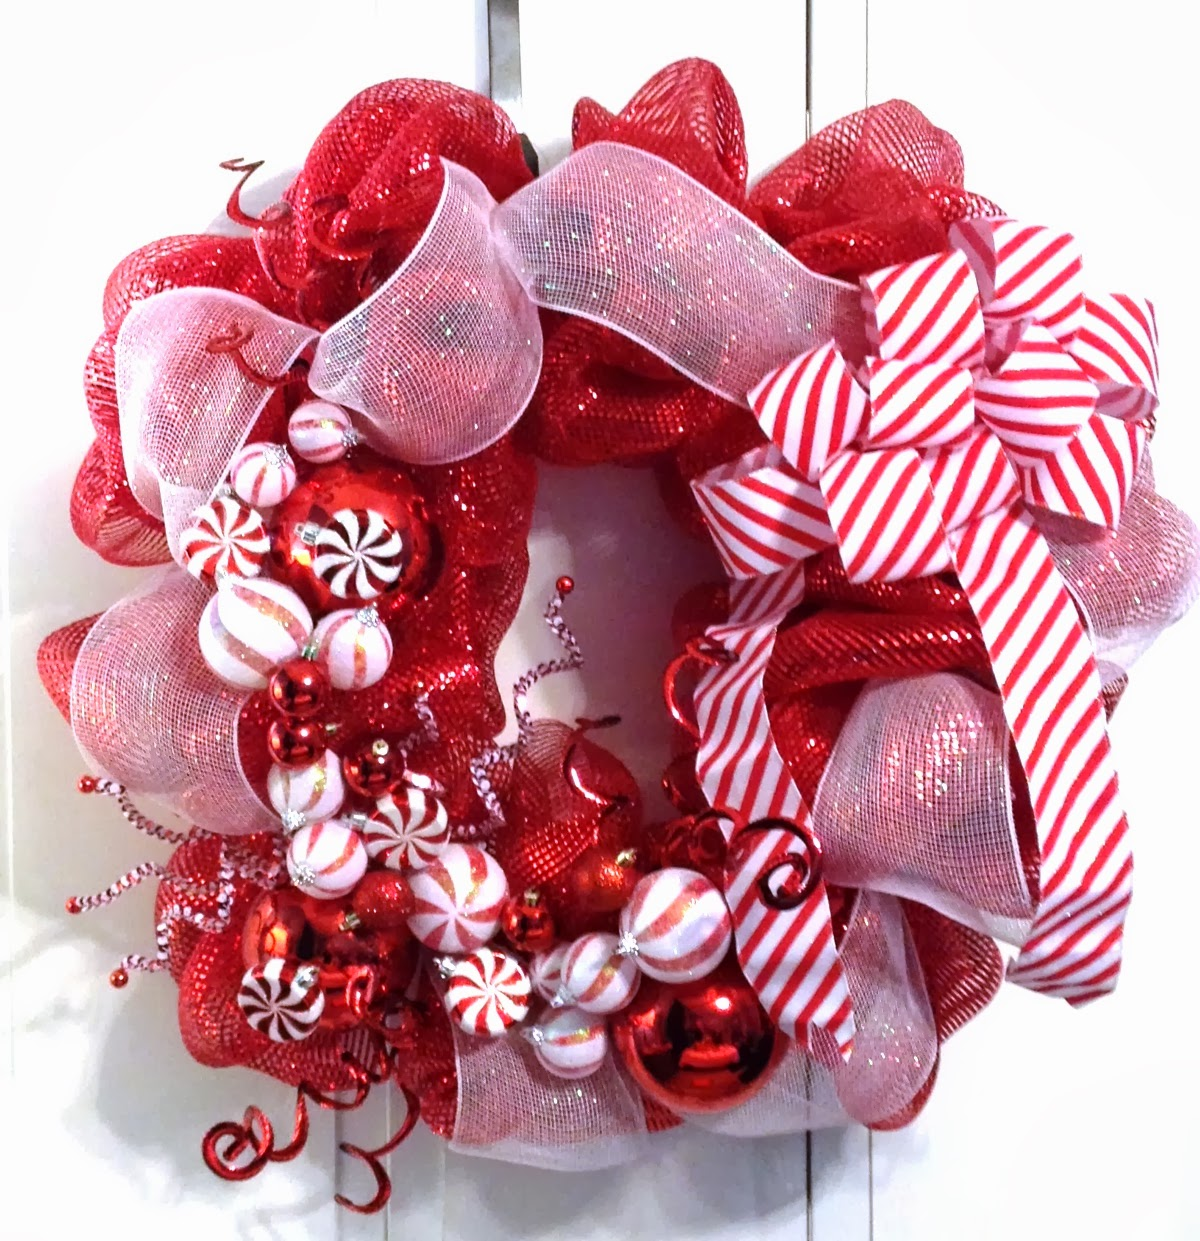 tangled wreaths christmas holiday décor wreath deco mesh red